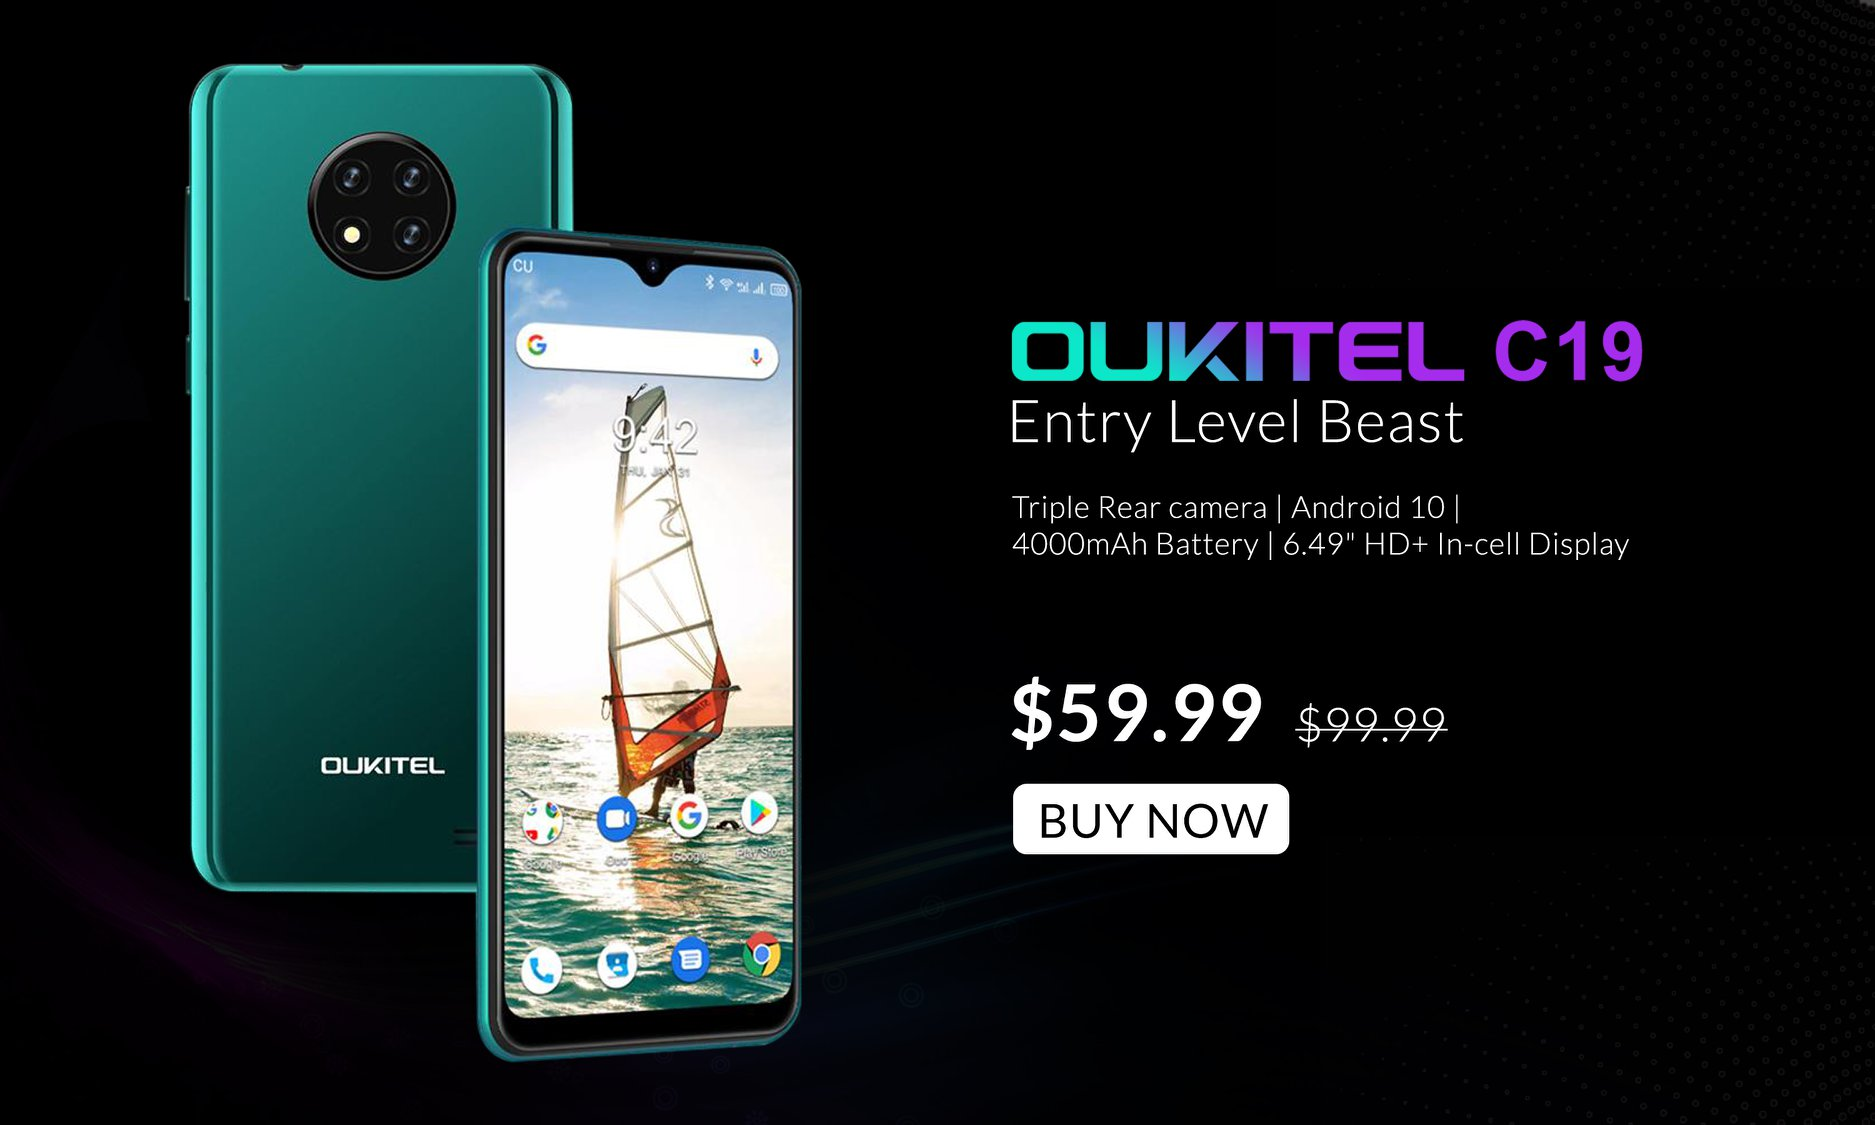 Few days left to avail this unbelievable deal of #OUKITEL #C19 at $59.99 only. #OukitelC19 Featured with: